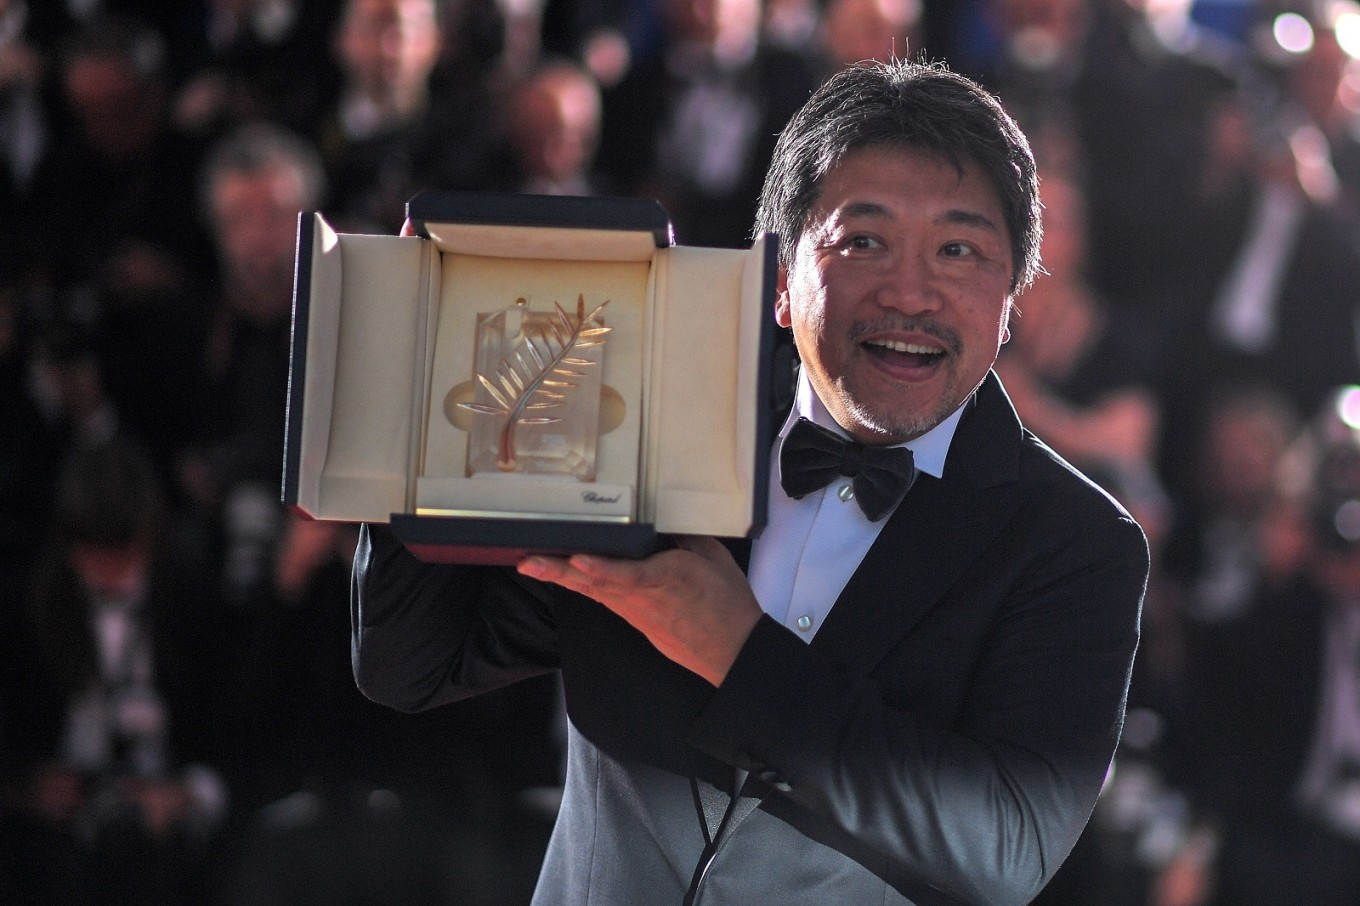 Japan wins Cannes top prize after Weinstein accuser takes stage